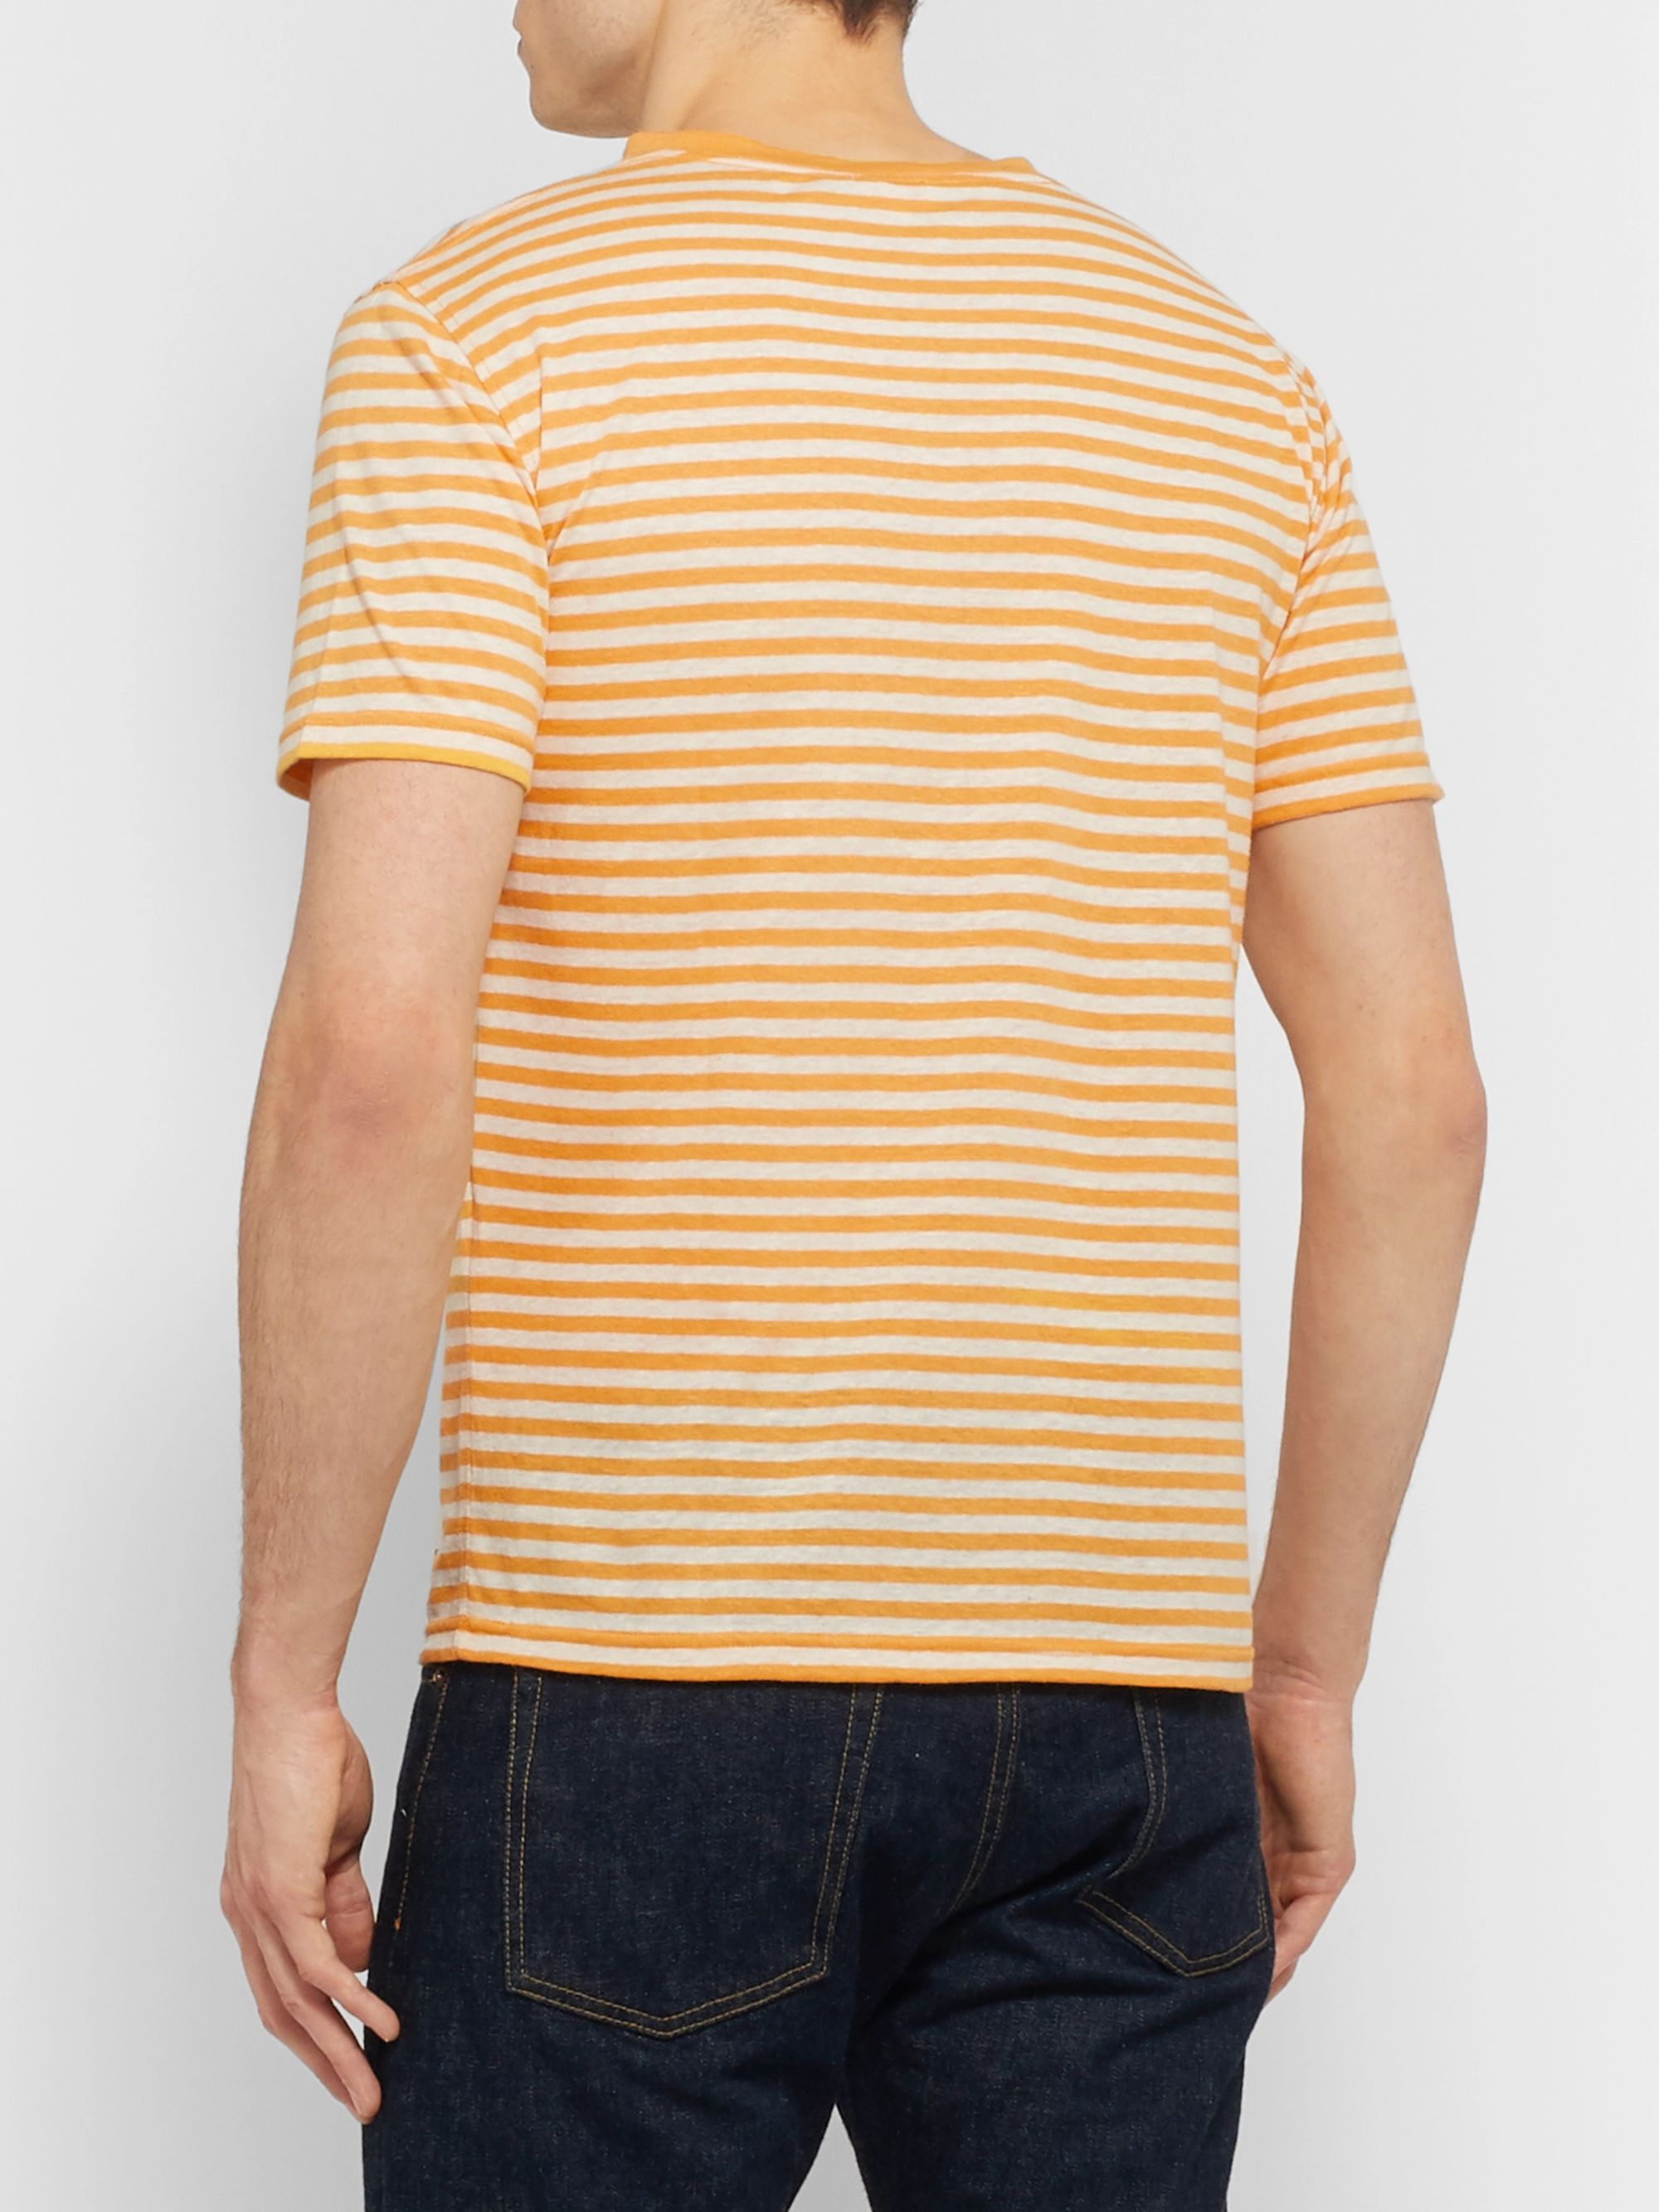 Armor Lux Slim-Fit Striped Cotton and Linen-Blend T-Shirt